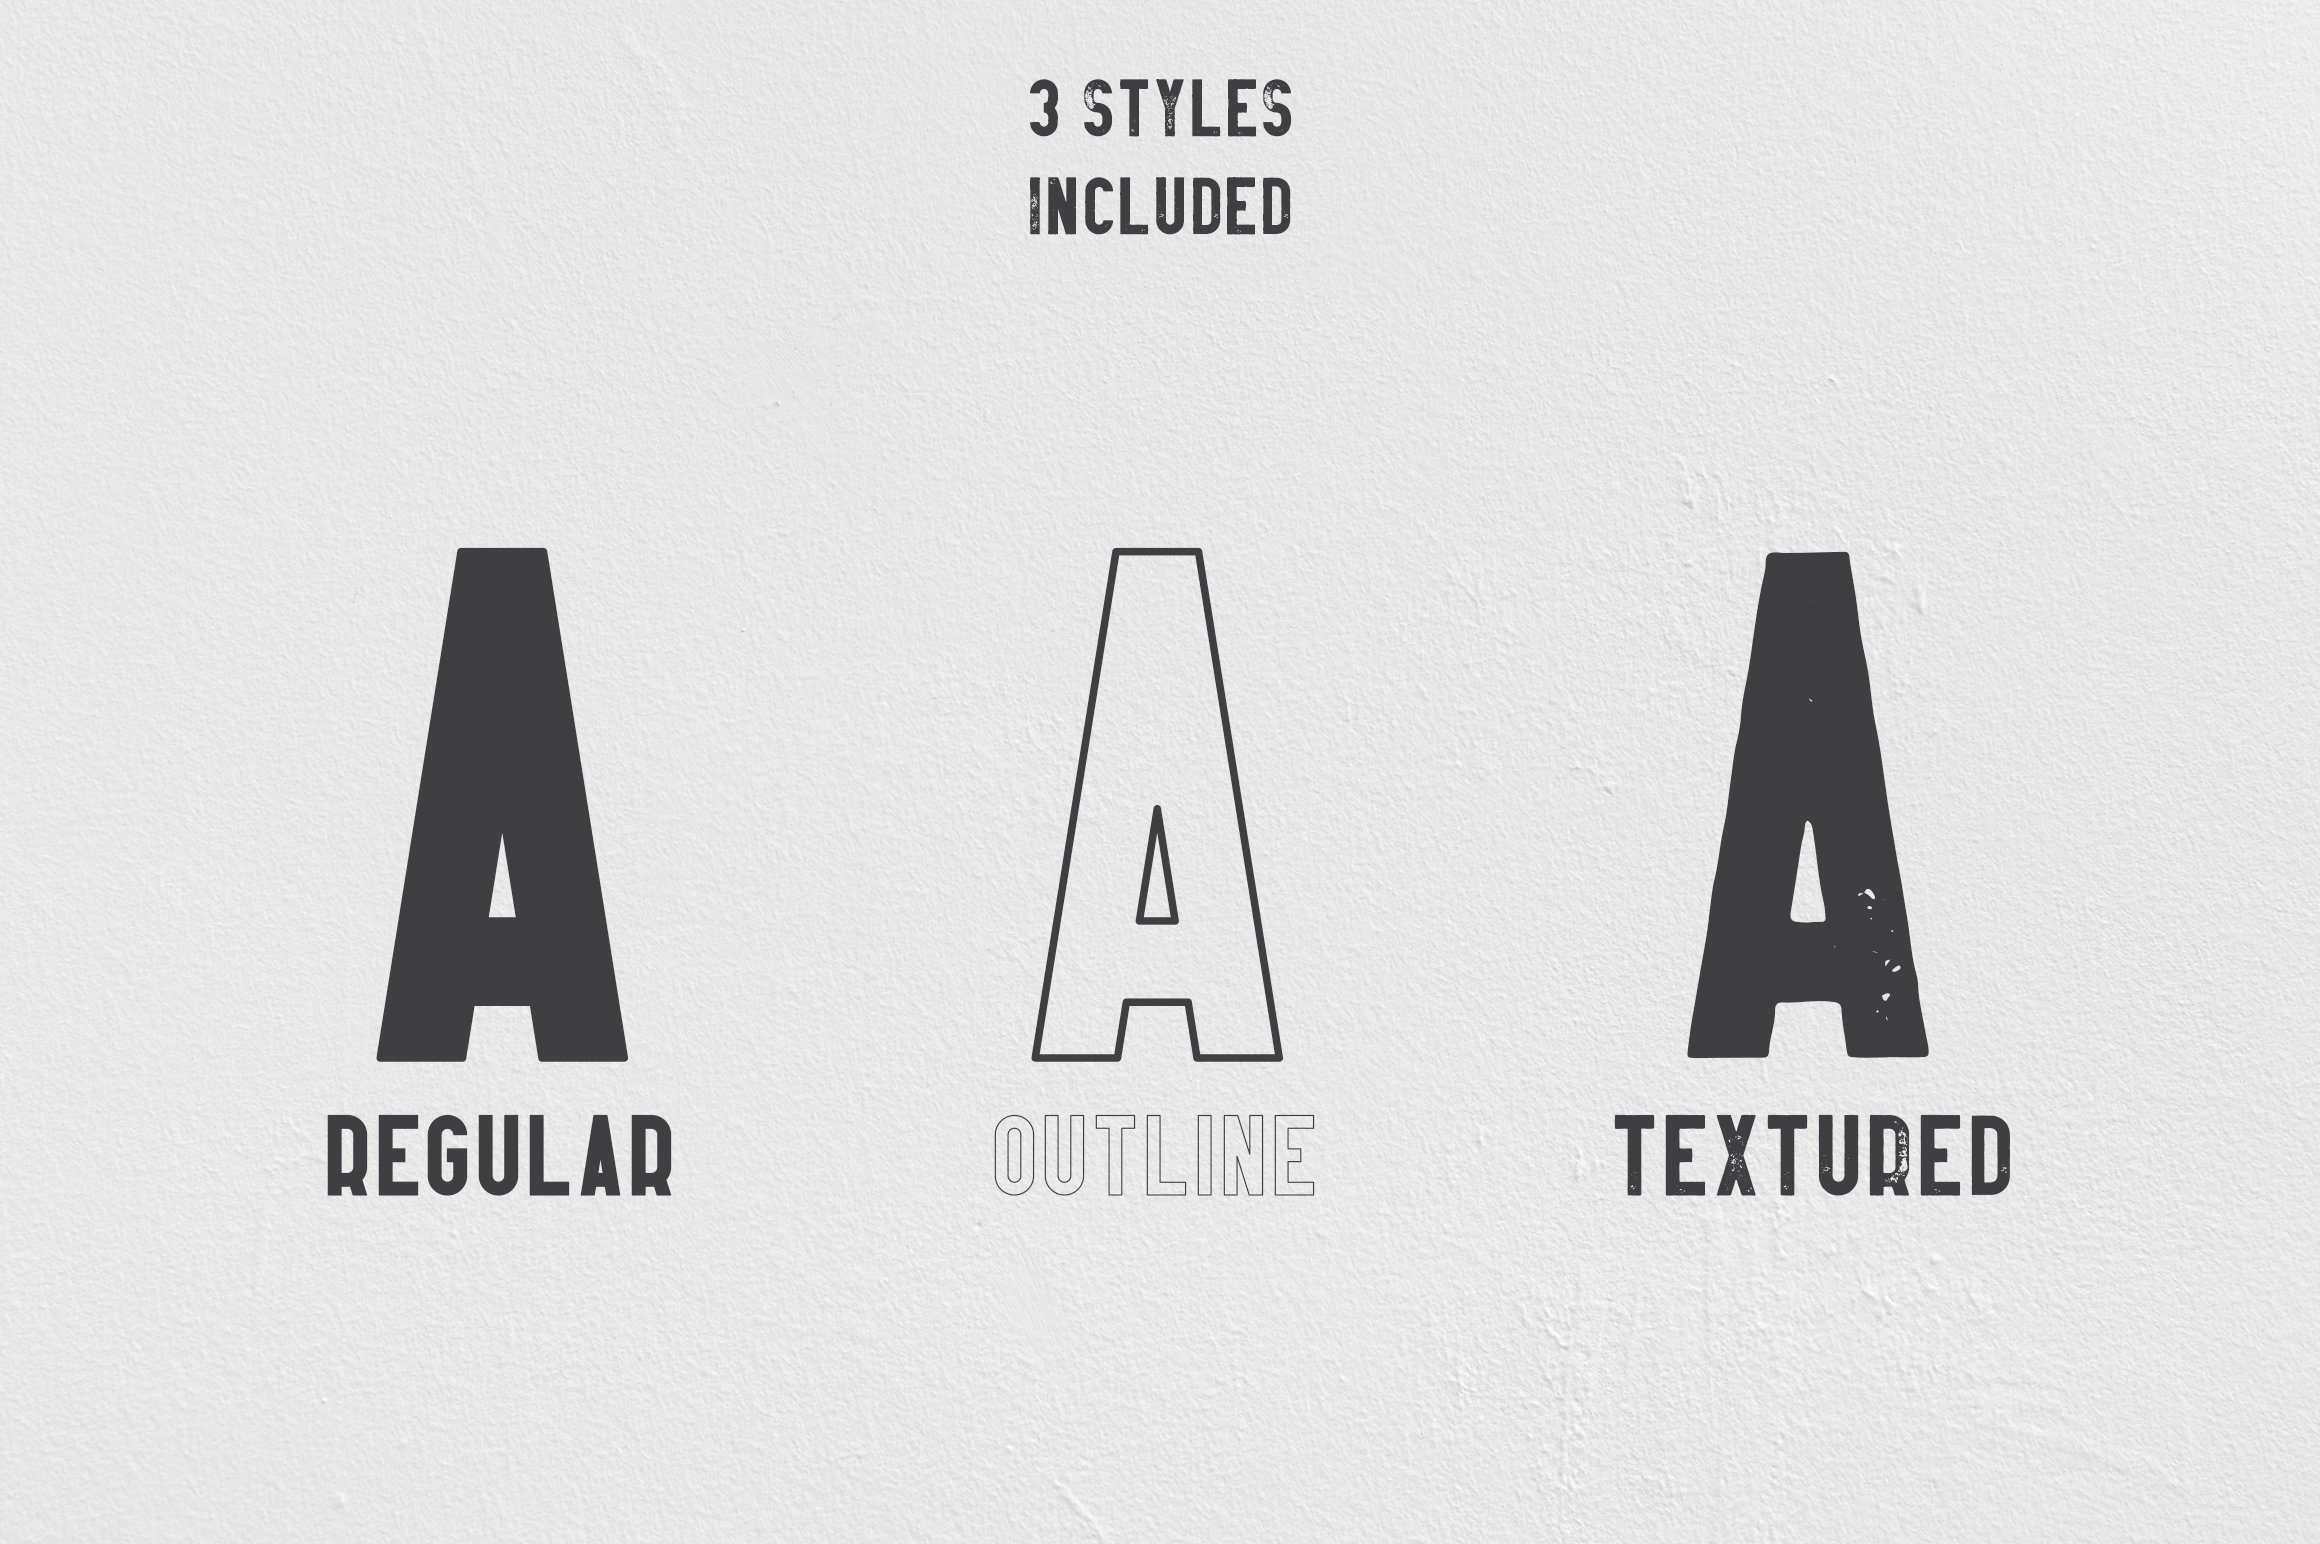 Afterclap Typeface - 3 Styles Playfair Display Font